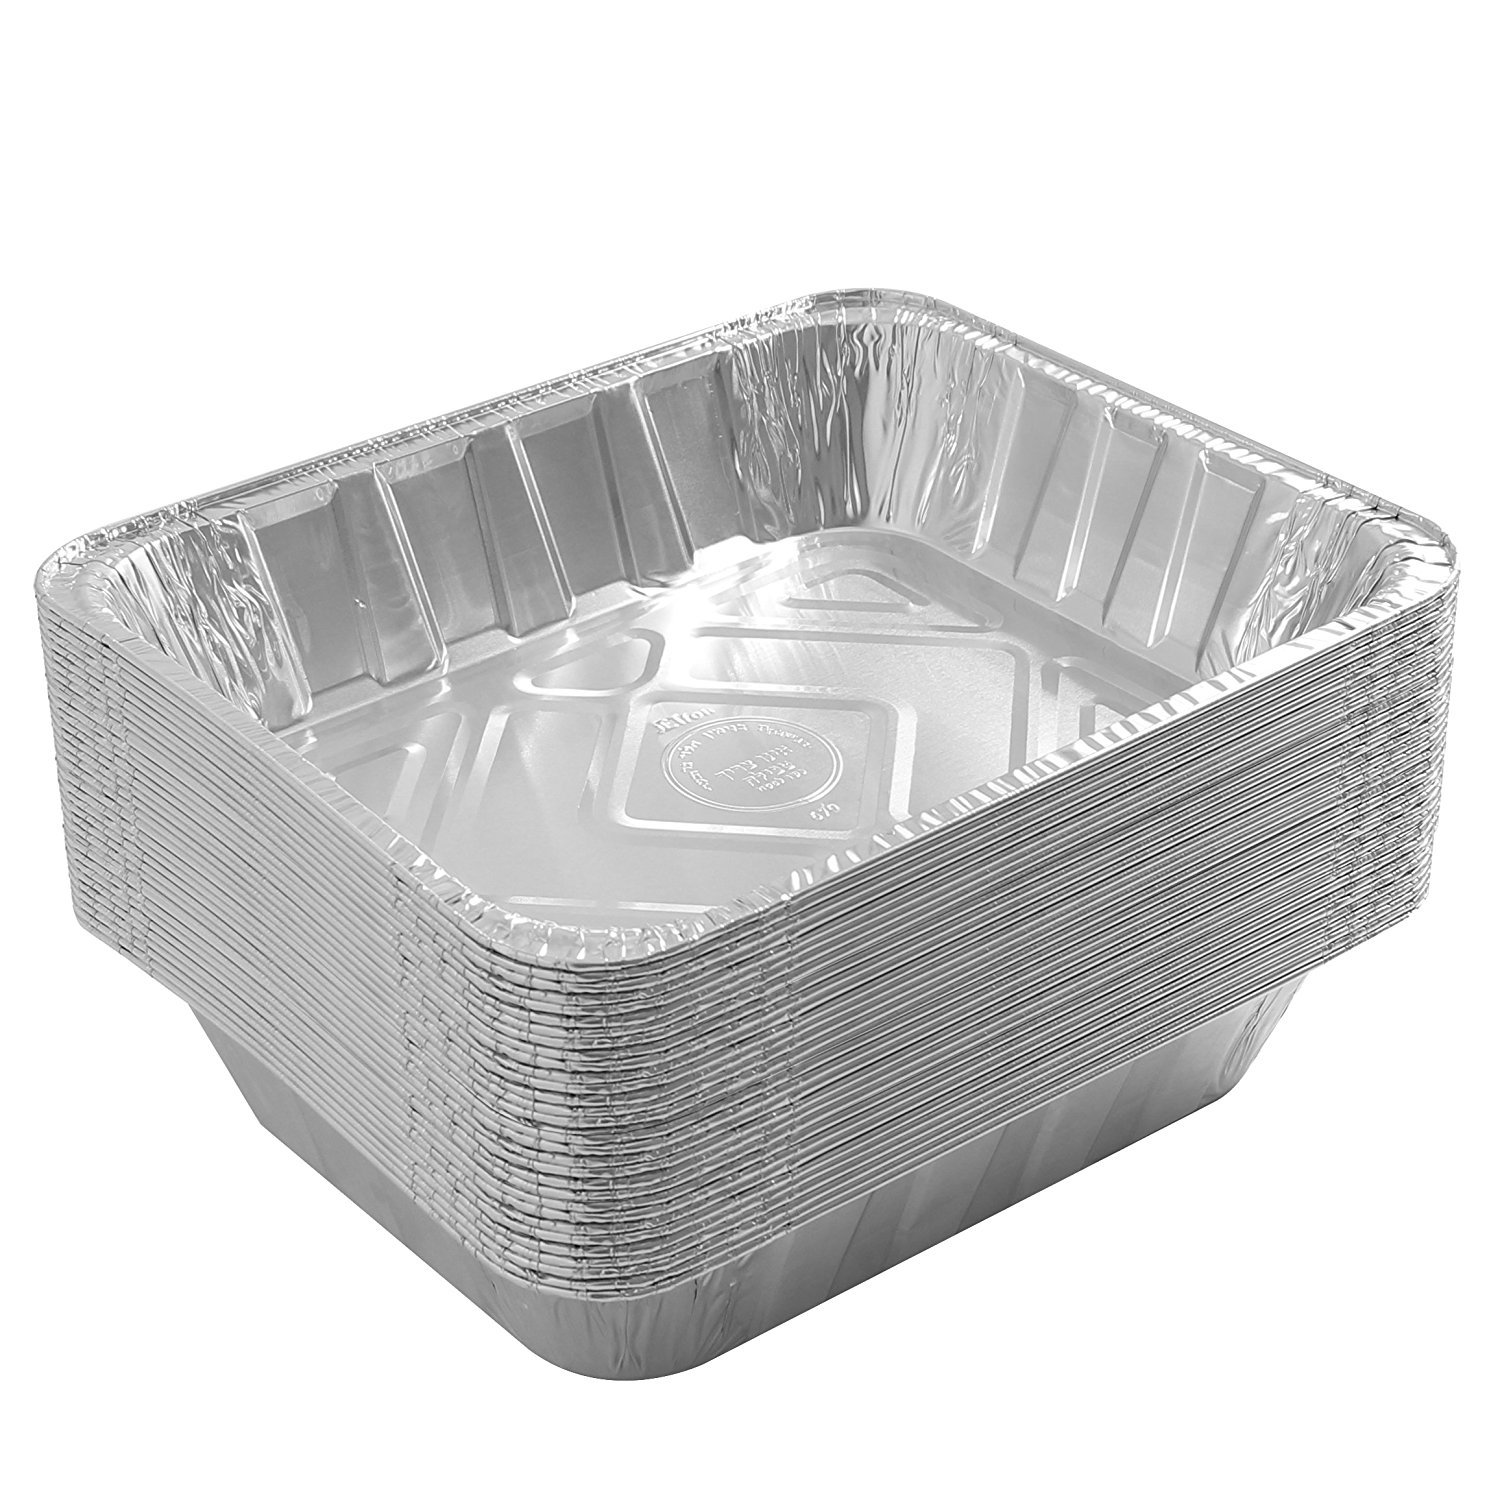 Jetfoil Aluminum Foil Steam Table Pans With Lids   Perfect for Catering, Party Supplies & Suitable for Broiling, Baking, Cakes and Pies - 9 x 13 Half size Deep   Pack of 30 by Jetfoil (Image #5)